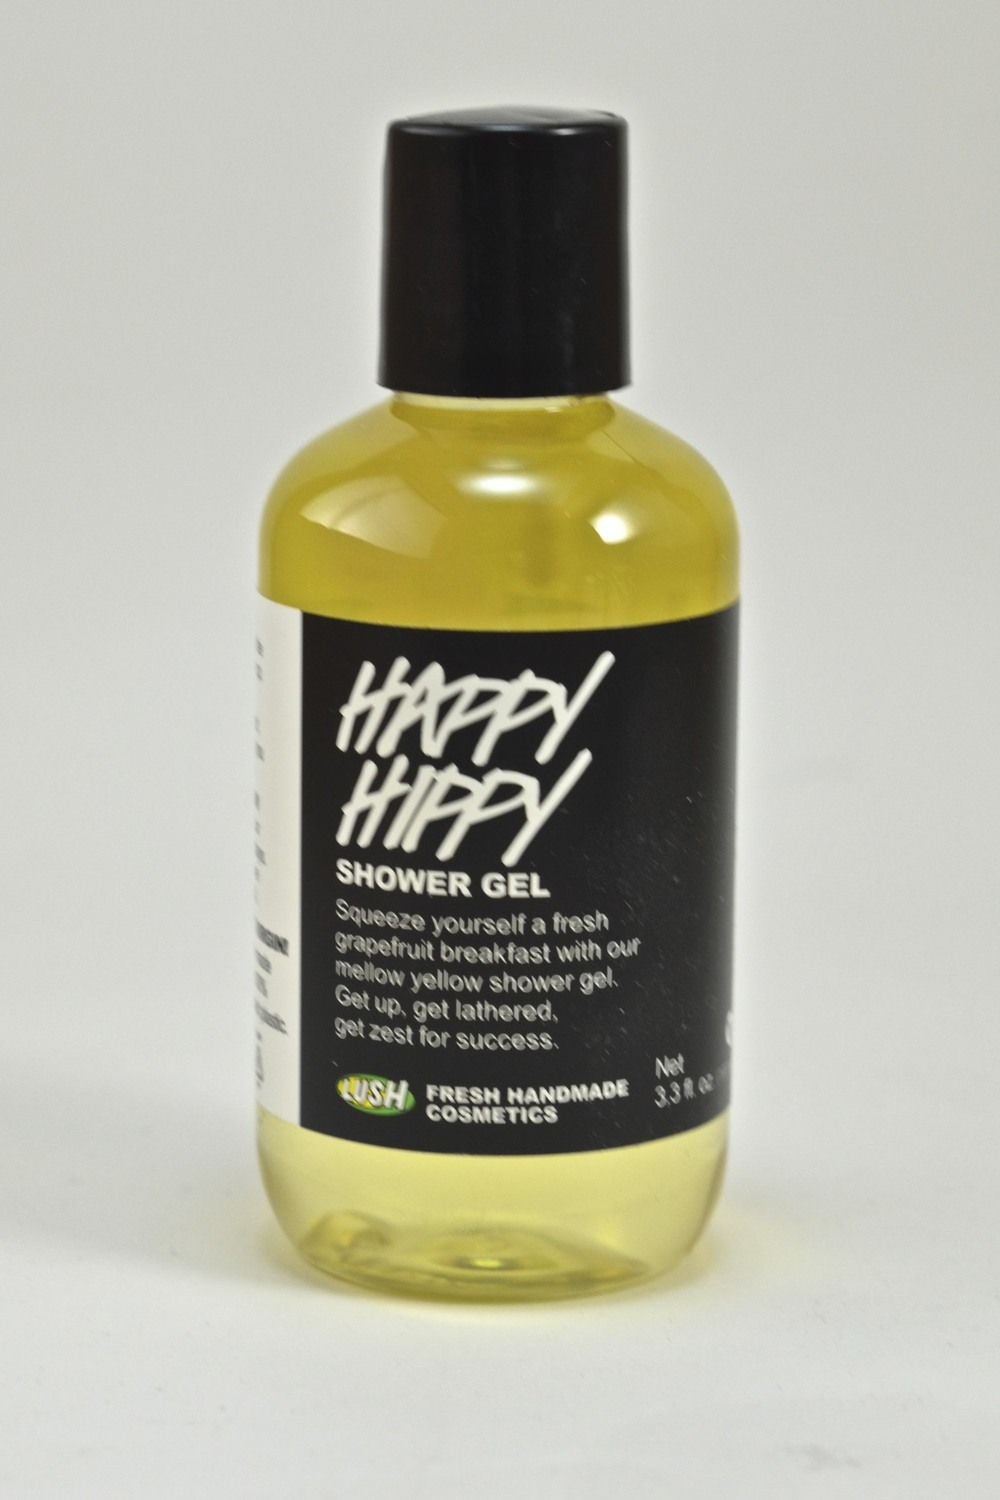 lush happy hippy shower gel review